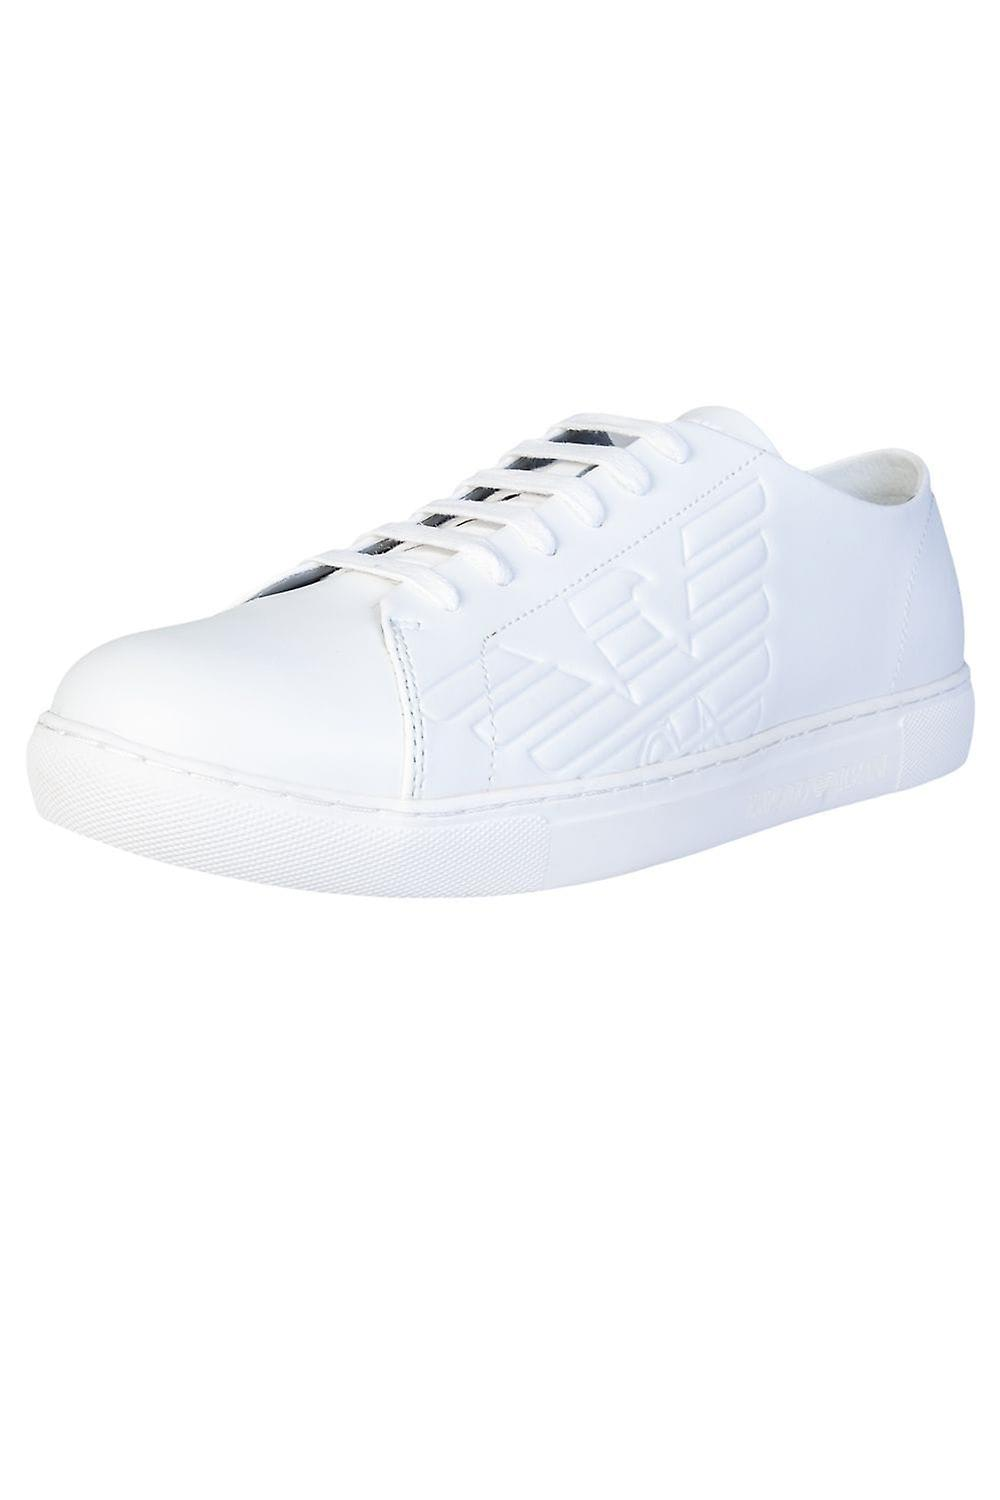 Emporio Armani Lace-up Trainers X4X238 XF254